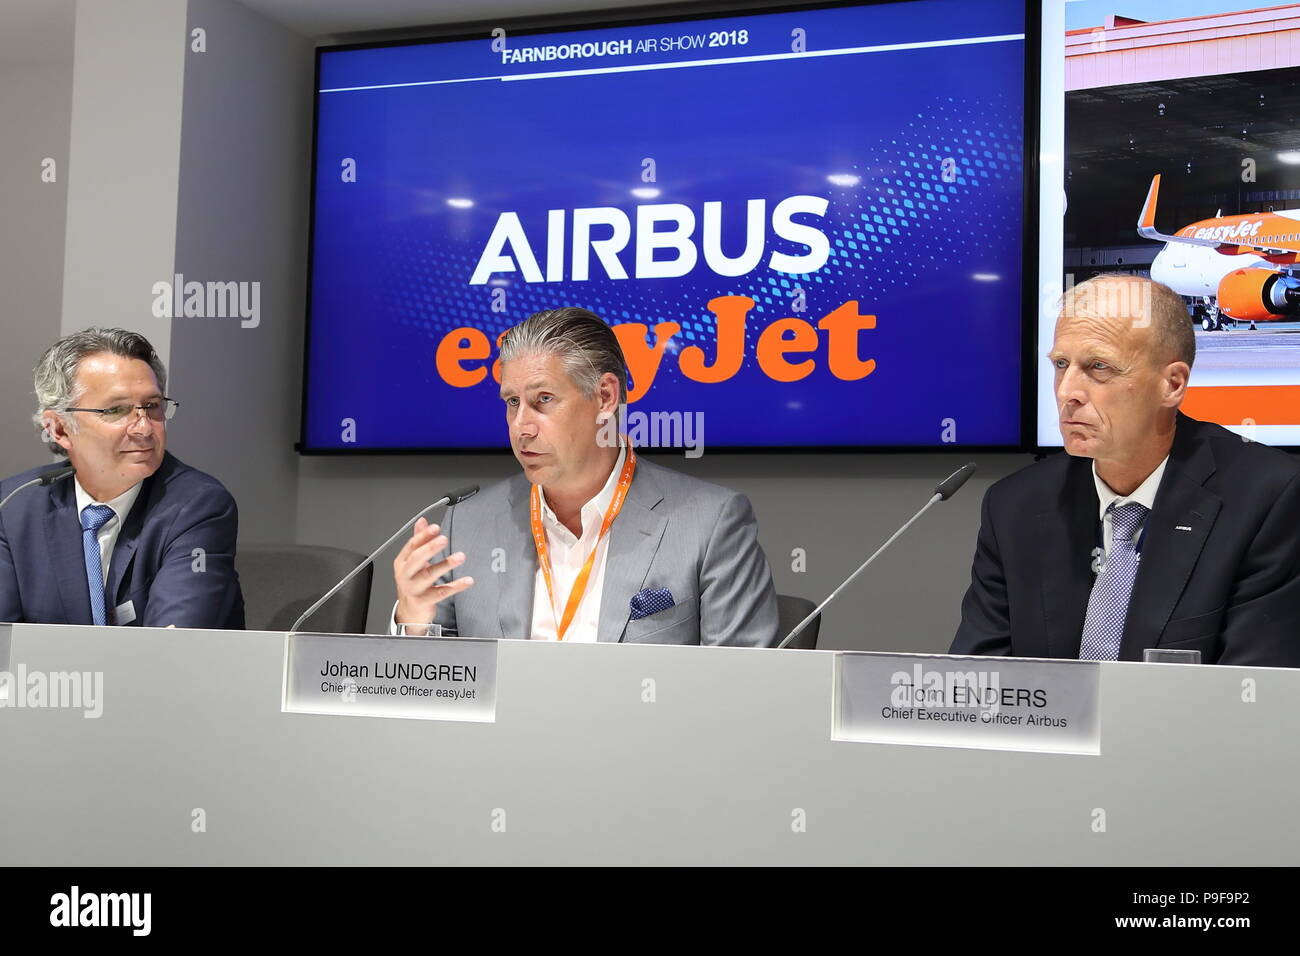 Easyjet took official delivery of its first Airbus A321neo in the presence of Tom Enders, CEO of Airbus, Johan Lundgren, CEO of Easyjet, Gael Meheust, CEO of CFM and Transport Secretary Chris Grayling. Enders, Meheust and Lundgren explained during a press conference that the three companies had engaged in a strategic partnership in which Easyjet relies on a fleet of Airbus A319, A320 and A321 family powered by CFM's fuel-efficient LEAP engines. Credit: Uwe Deffner/Alamy Live News - Stock Image